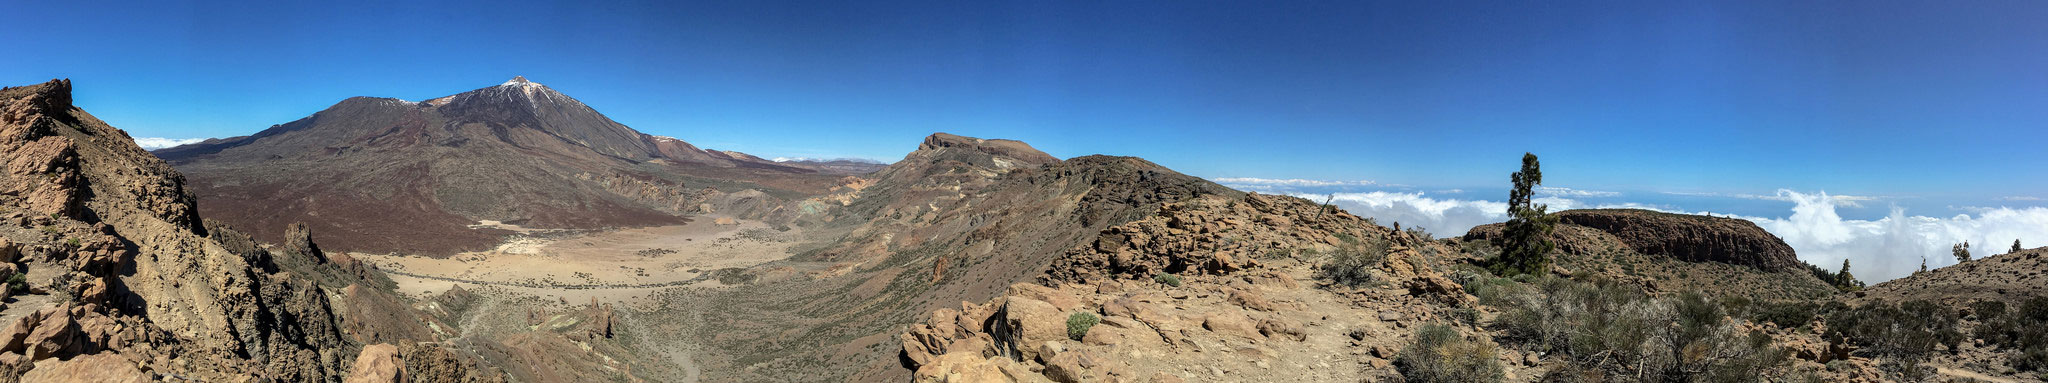 Teide with Pico Viejo and Caldera